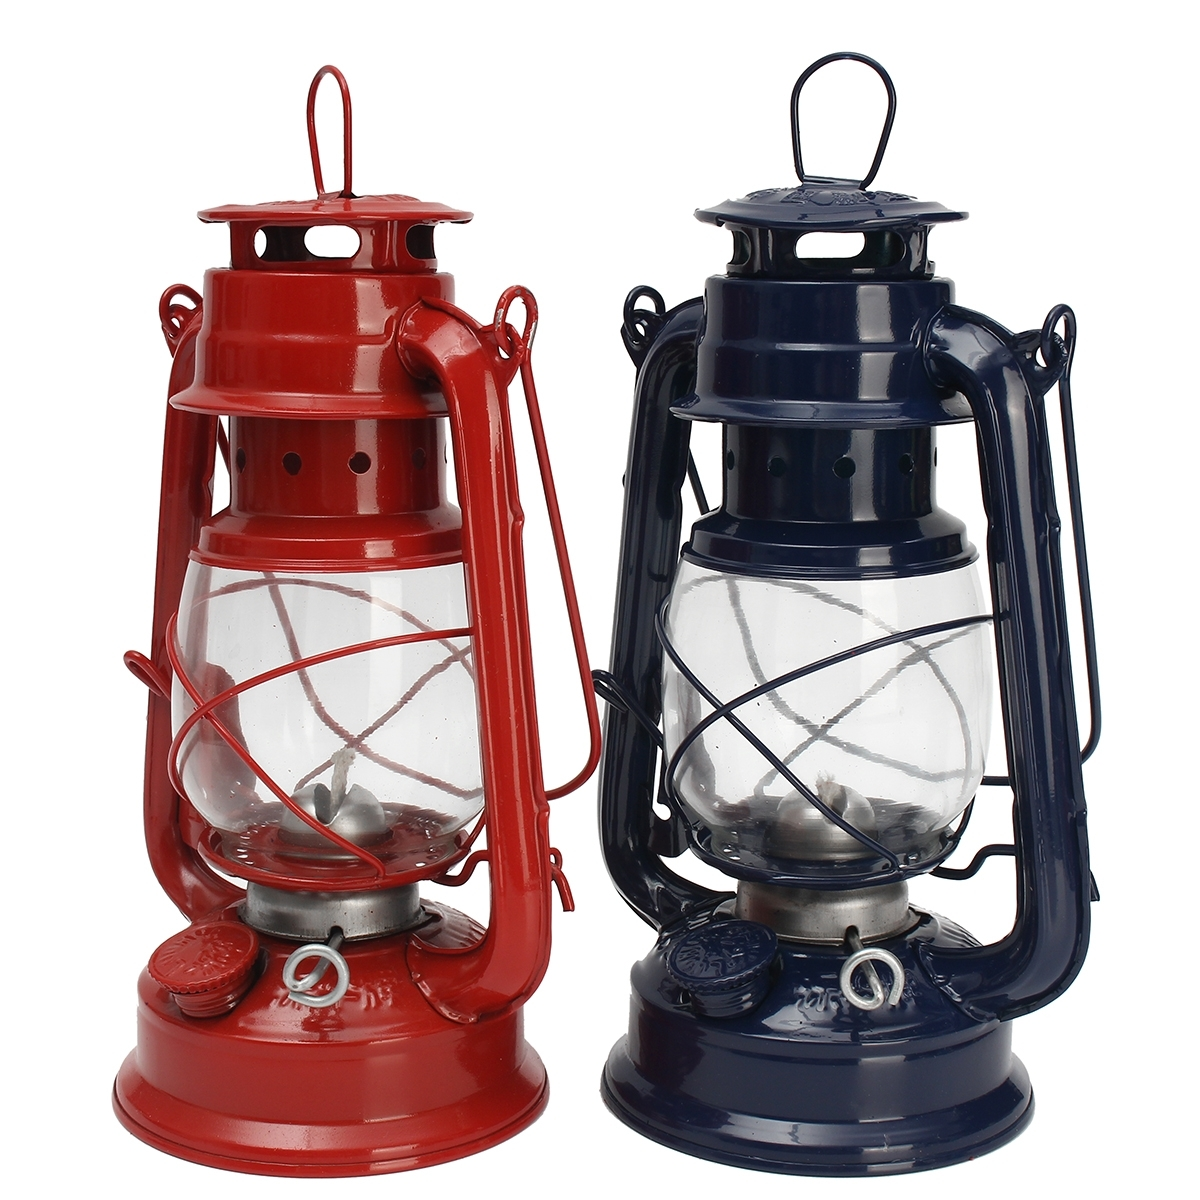 Vintage Oil Lamp Lantern Kerosene Paraffin Hurricane Lamp Light pertaining to Outdoor Kerosene Lanterns (Image 20 of 20)